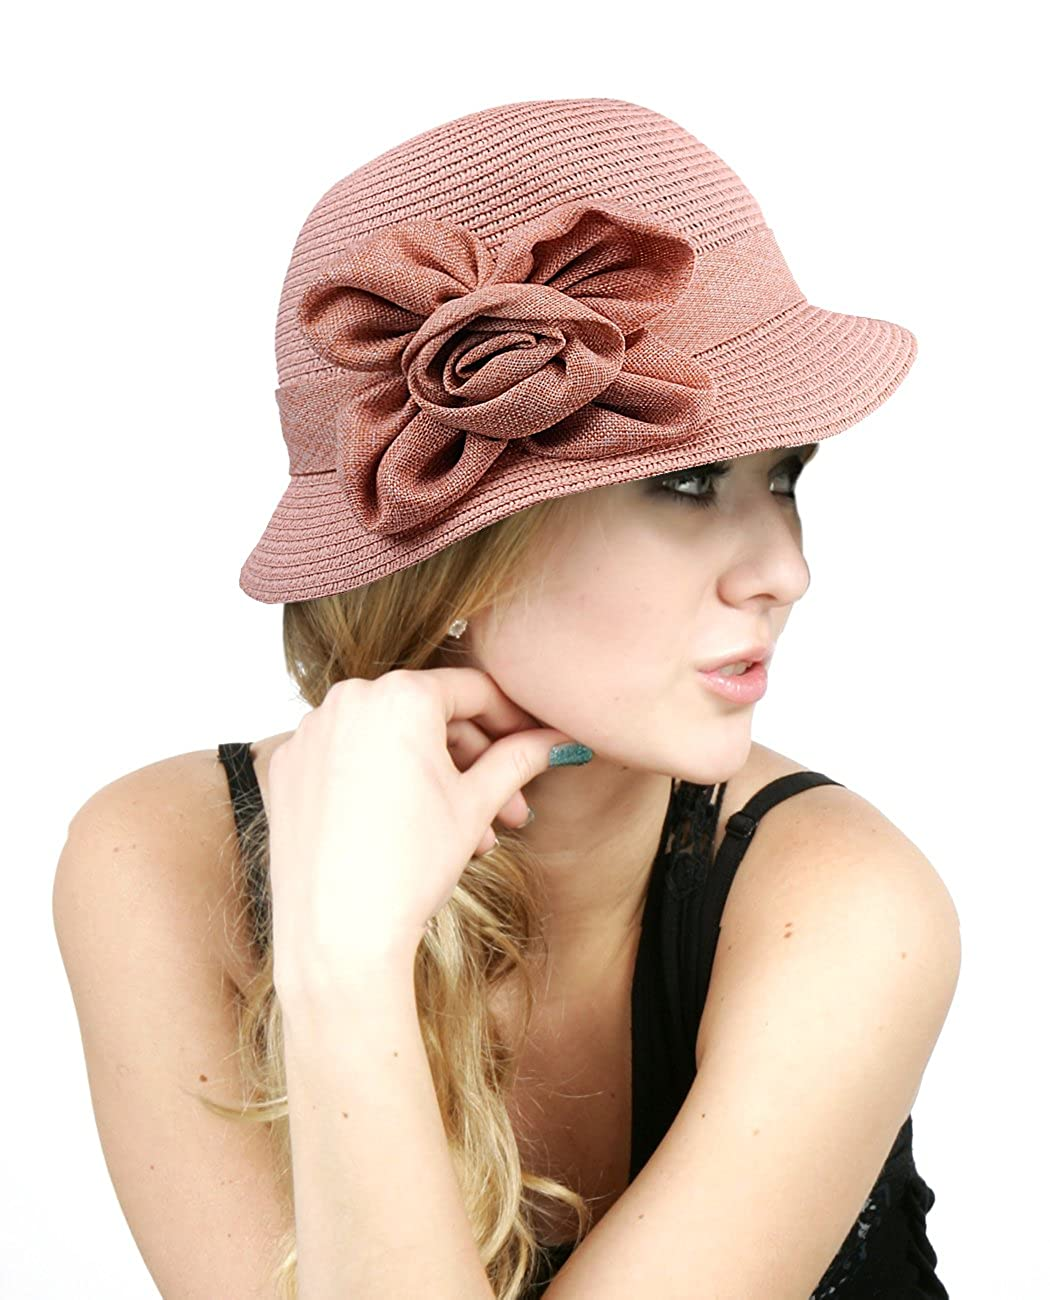 NYFASHION101 Women's Paper Woven Cloche Hat with Flower Band